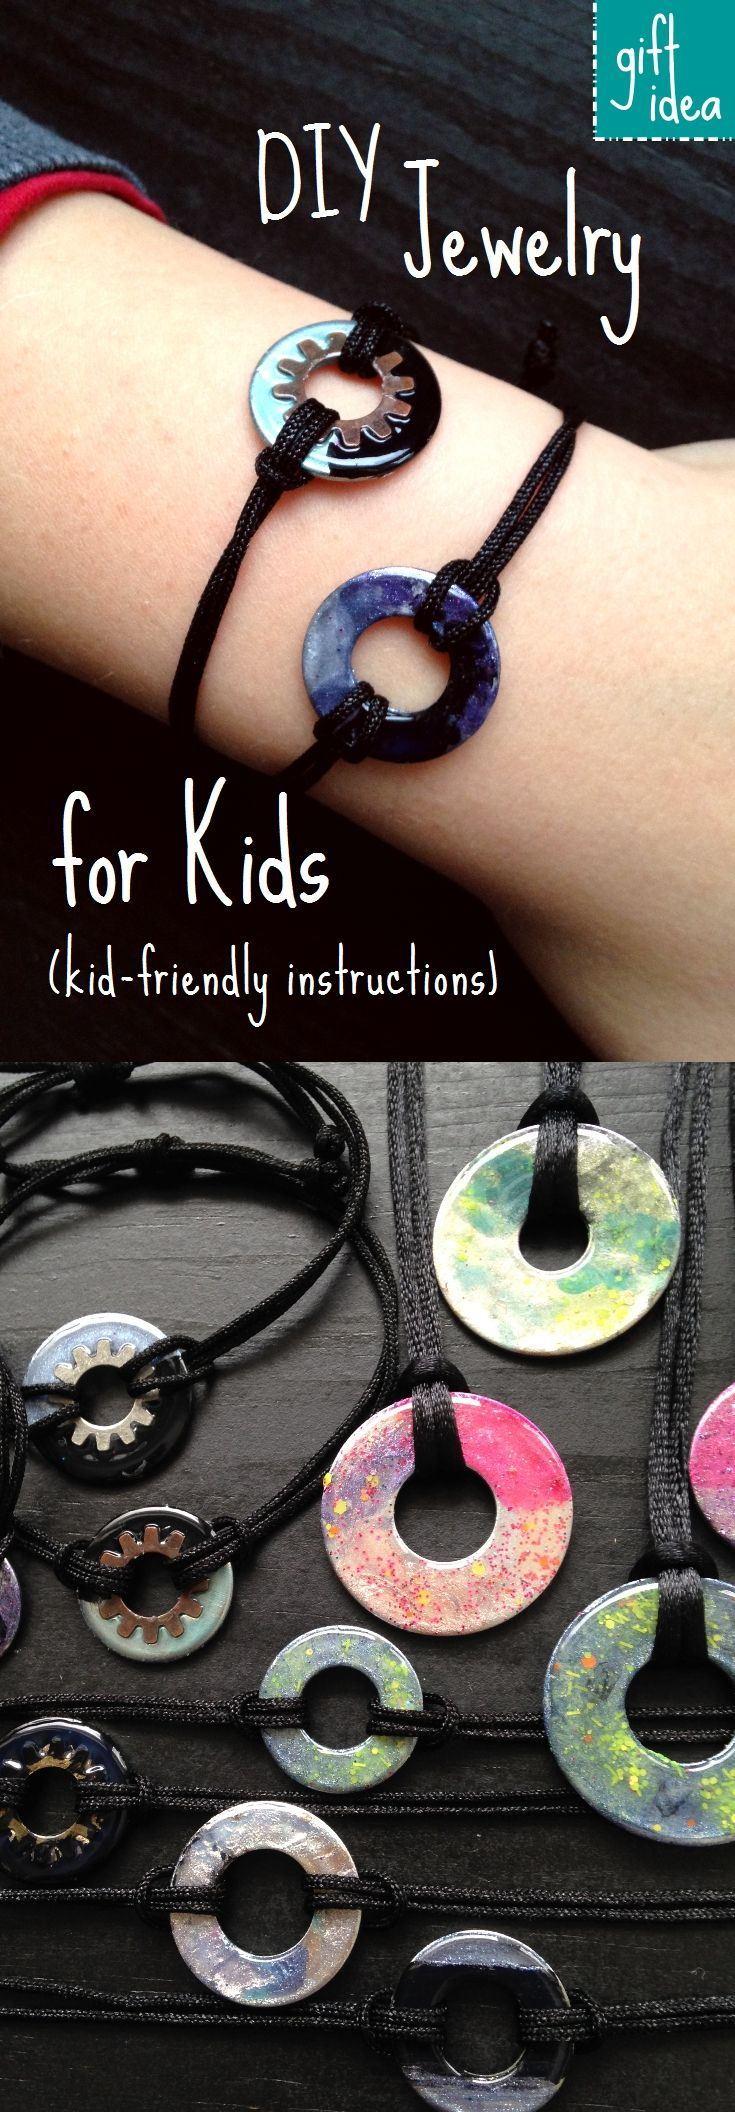 We made 31 beautiful bracelets and necklaces for gifts. So fun and easy to make….